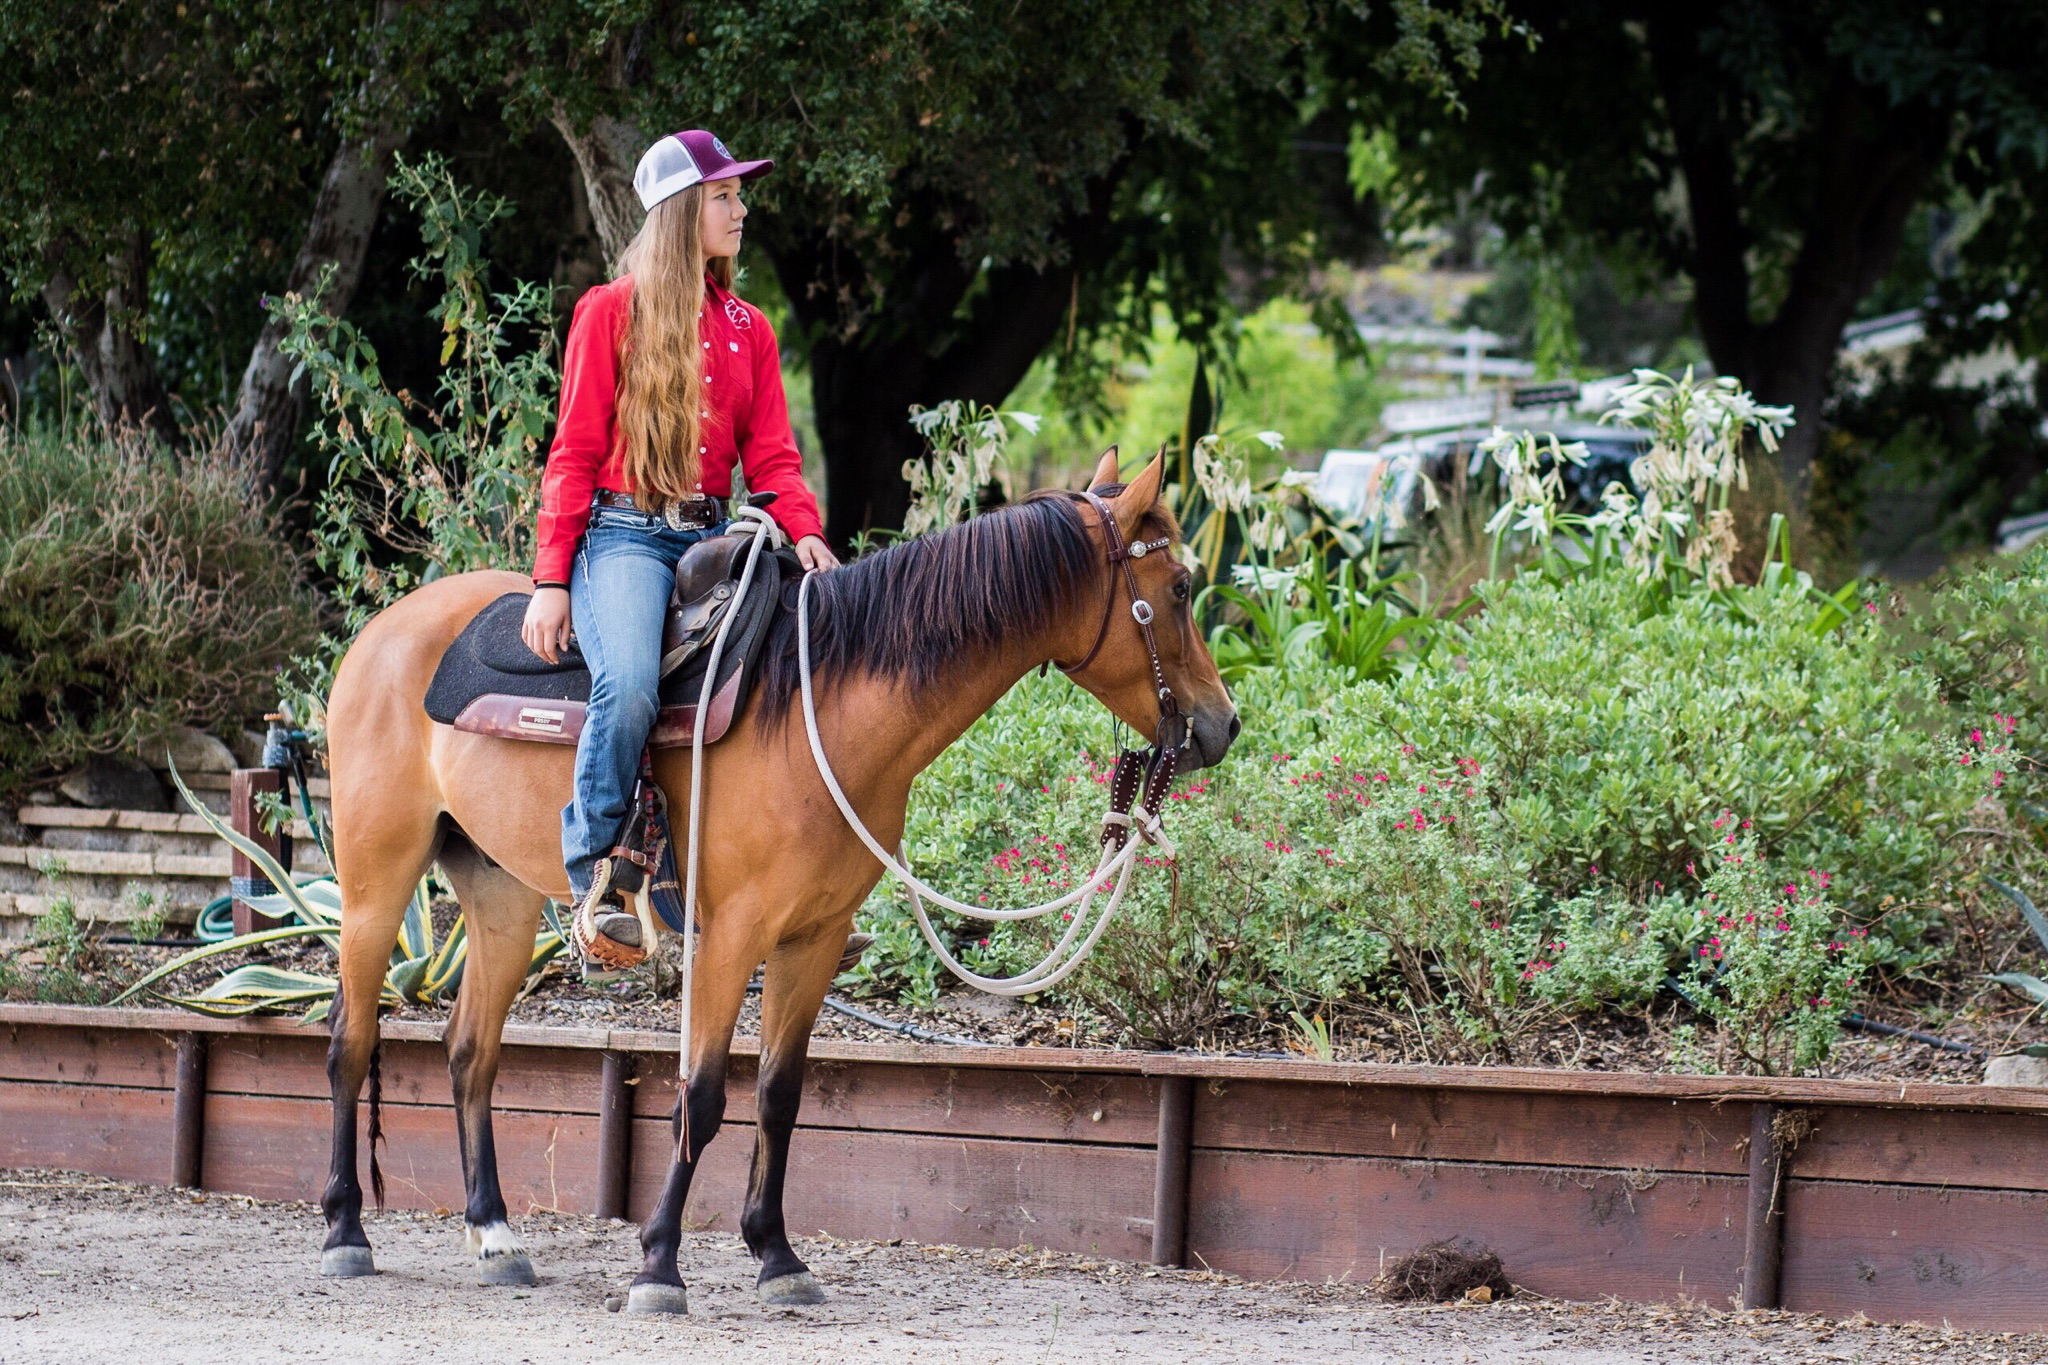 Andrea Cao: Local Teen Equestrian with Entrepreneur Hustle | SLO Horse News